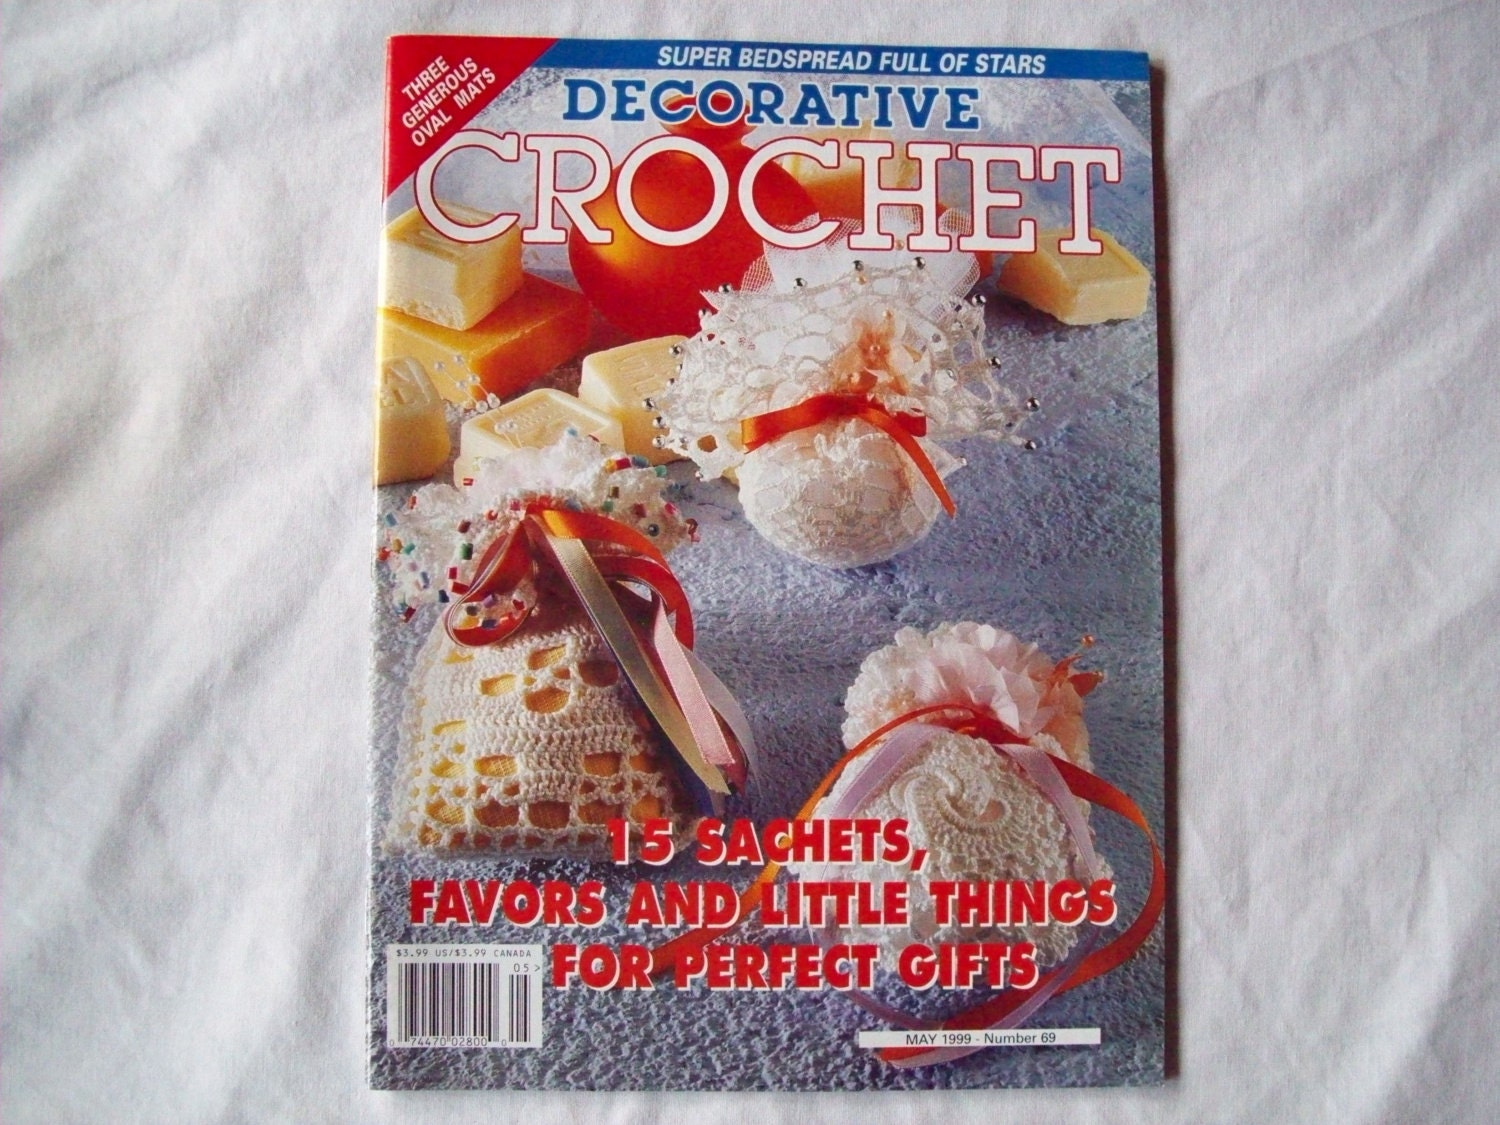 Decorative Crochet : Decorative Crochet Magazine May 1999 Issue 69 by CozyHomeCrochet